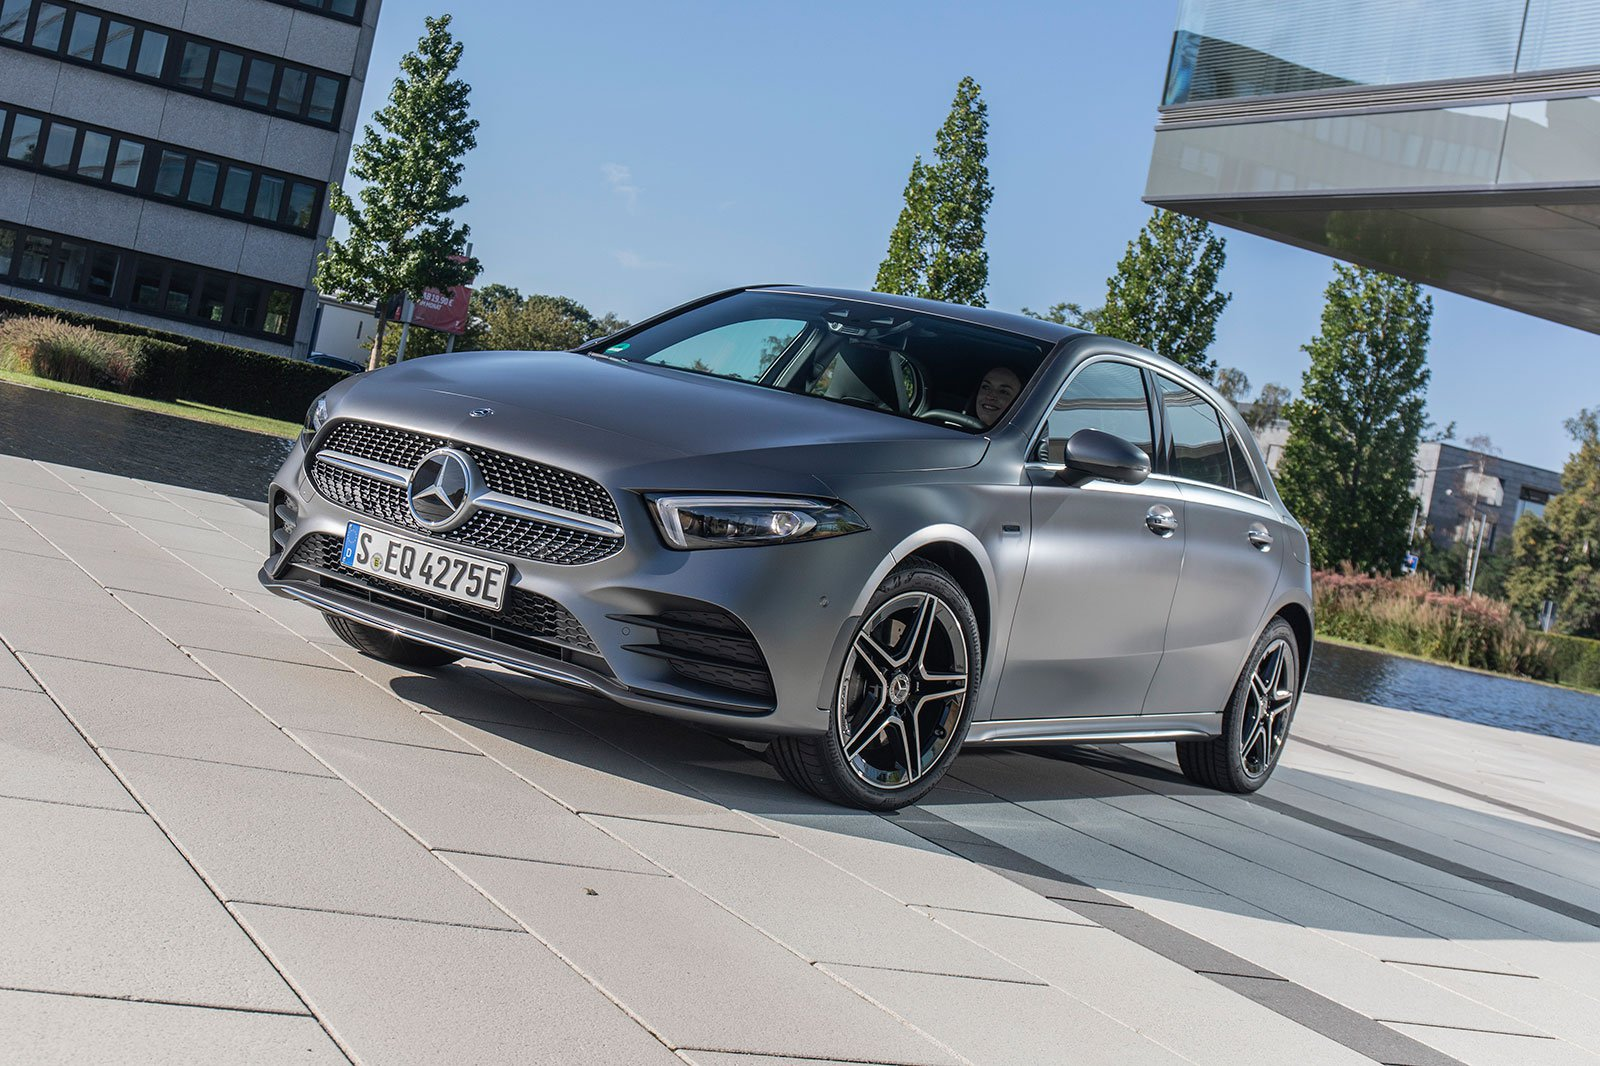 2019 mercedes a 250 e silver parked front